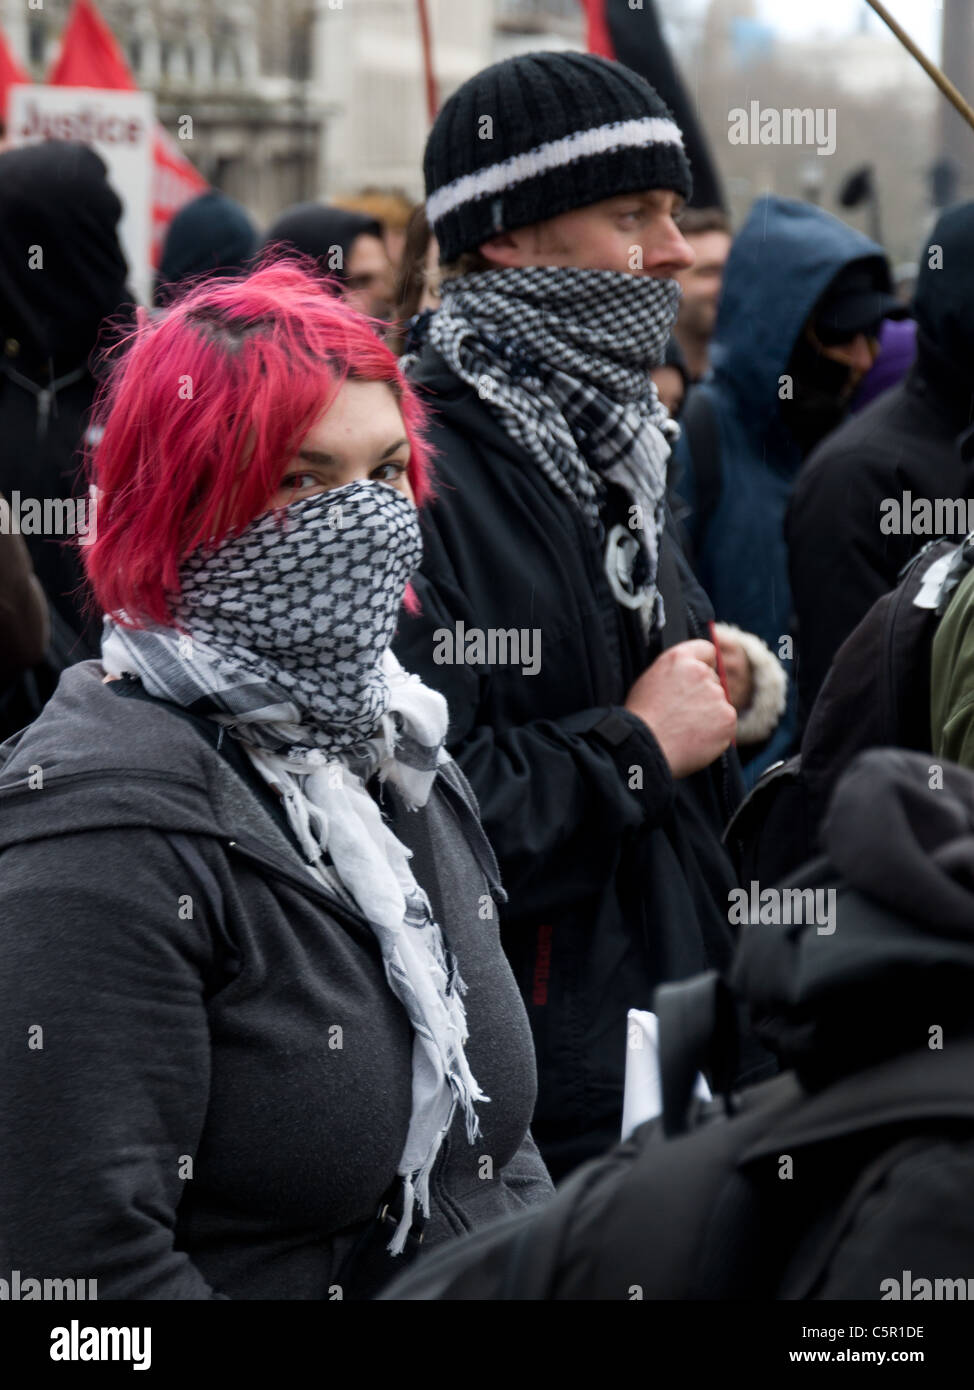 Female anarchist with red hair and bandana covering her face at G20 March in London on 28th March 2009 - Stock Image